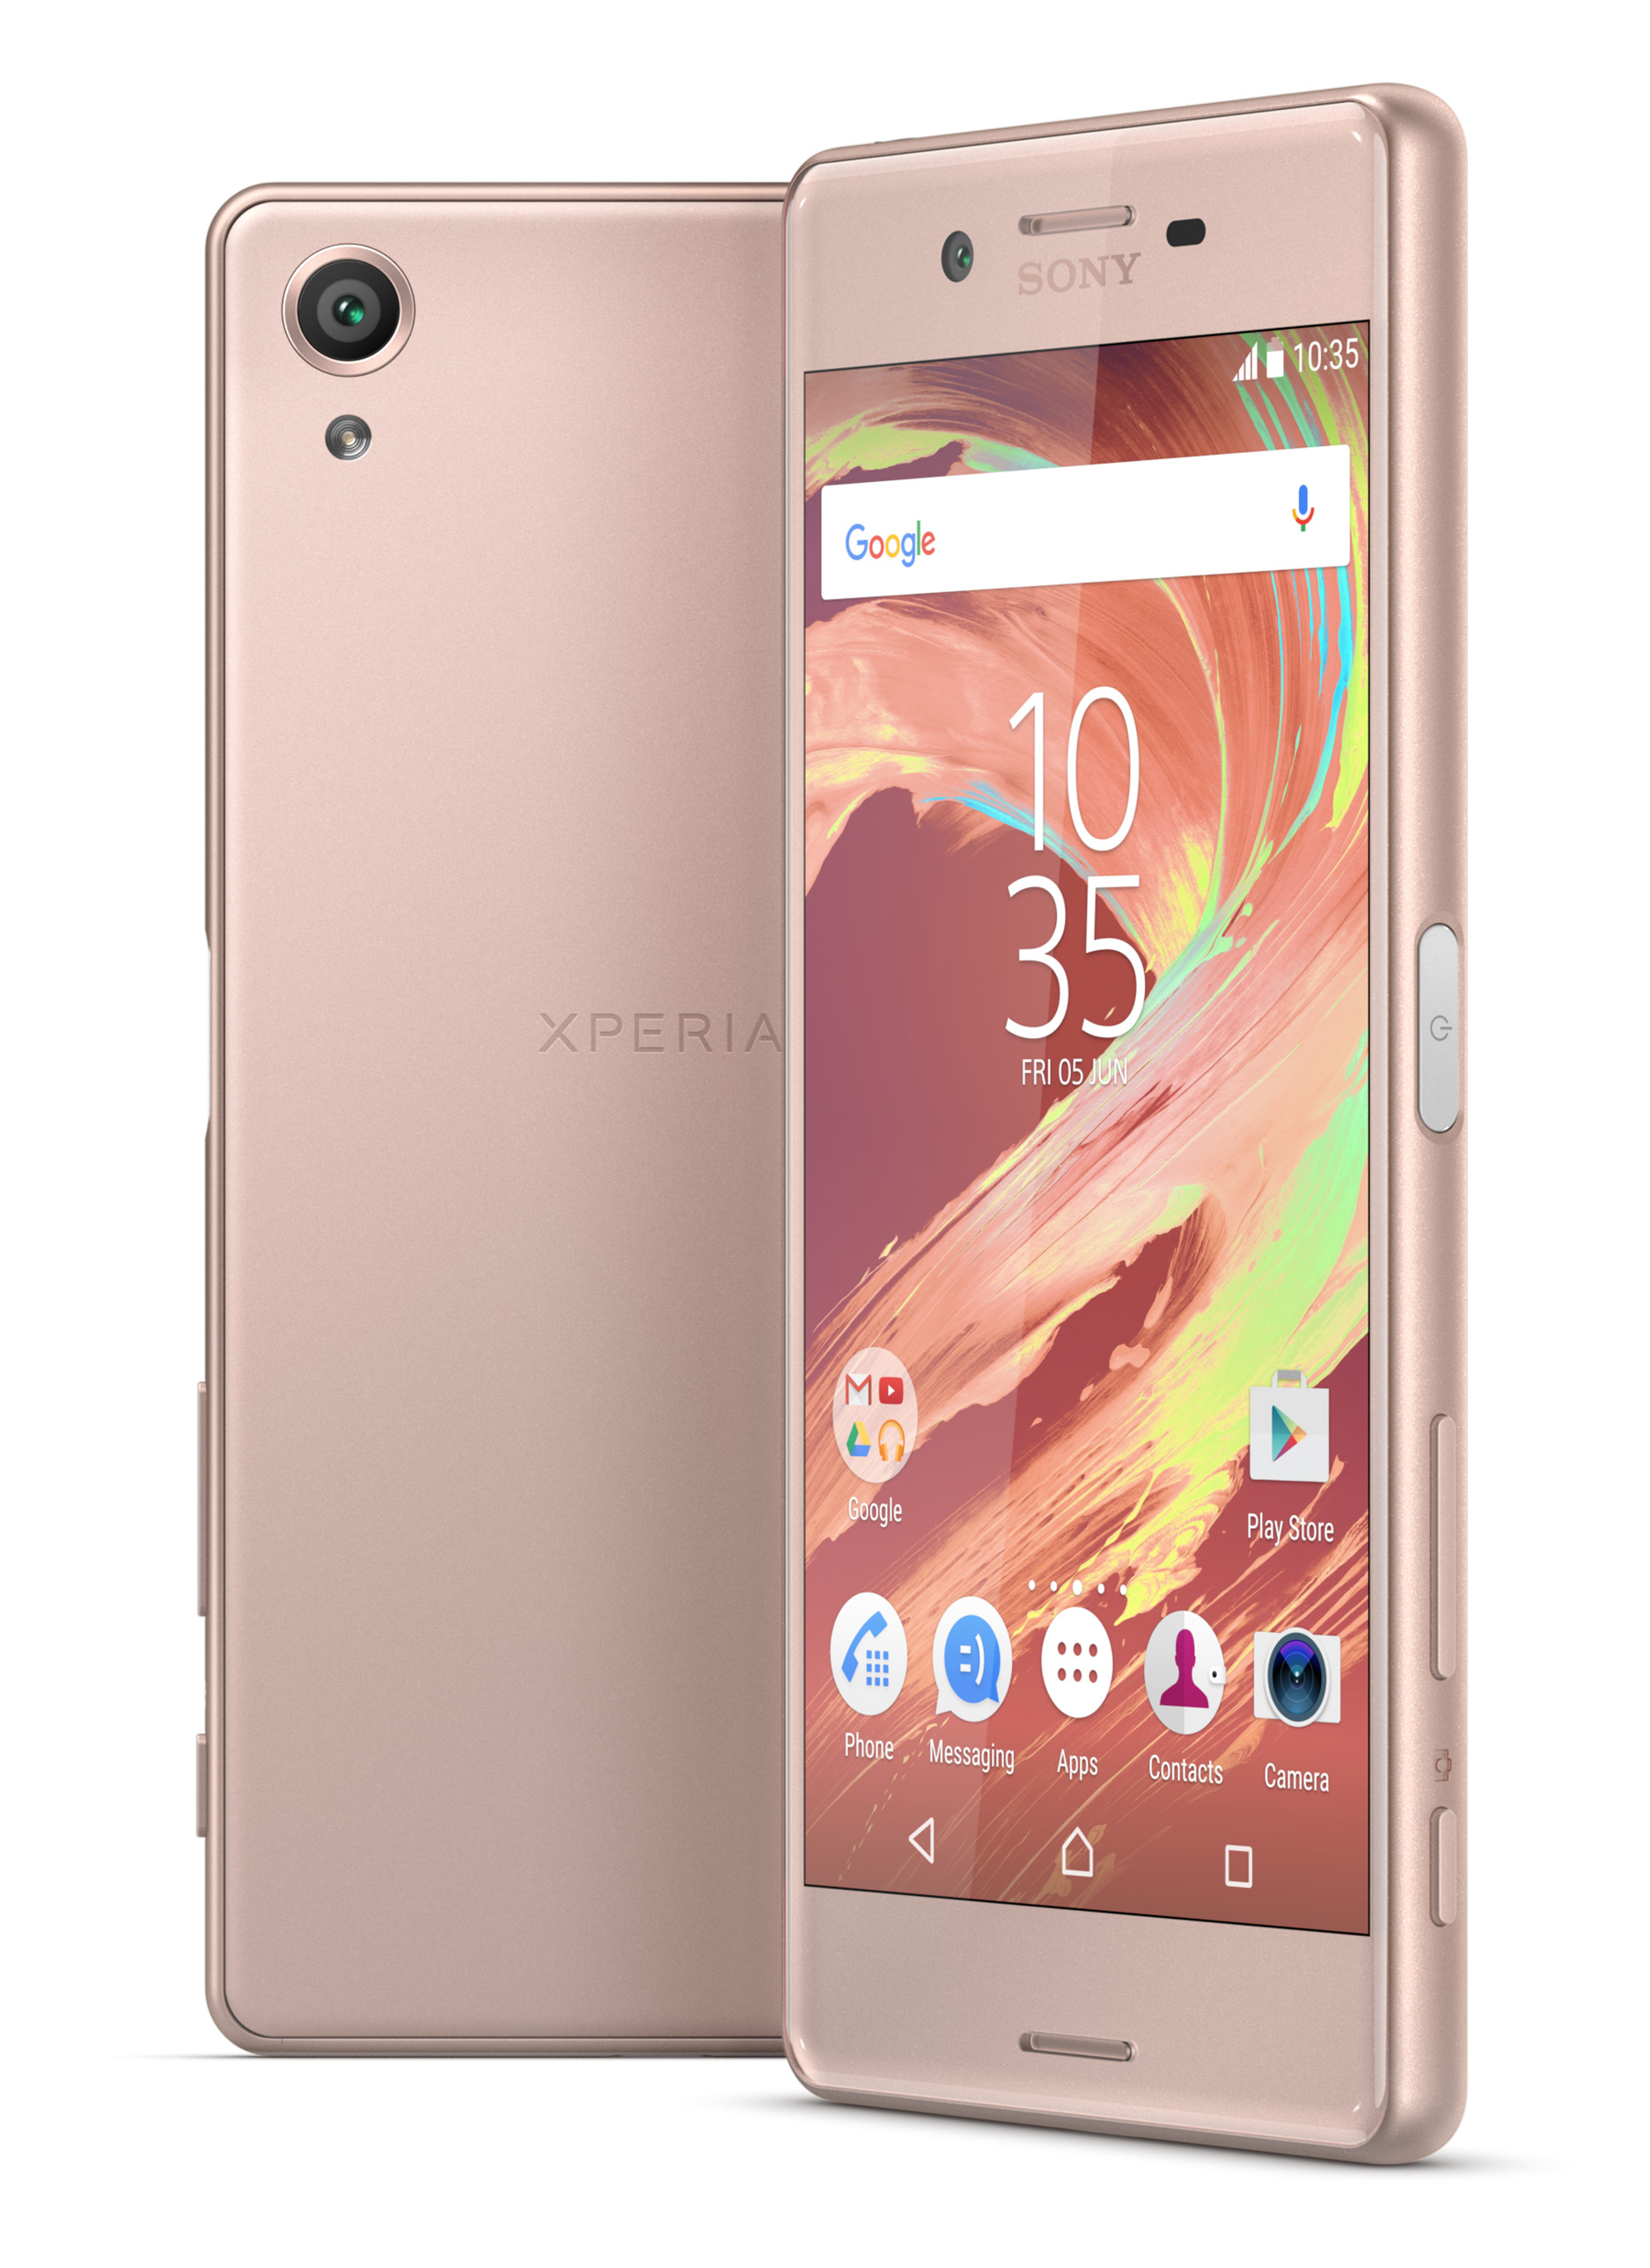 sony xperia x f5121 32gb unlocked gsm 4g lte 5 23mp camera android smartphone ebay. Black Bedroom Furniture Sets. Home Design Ideas